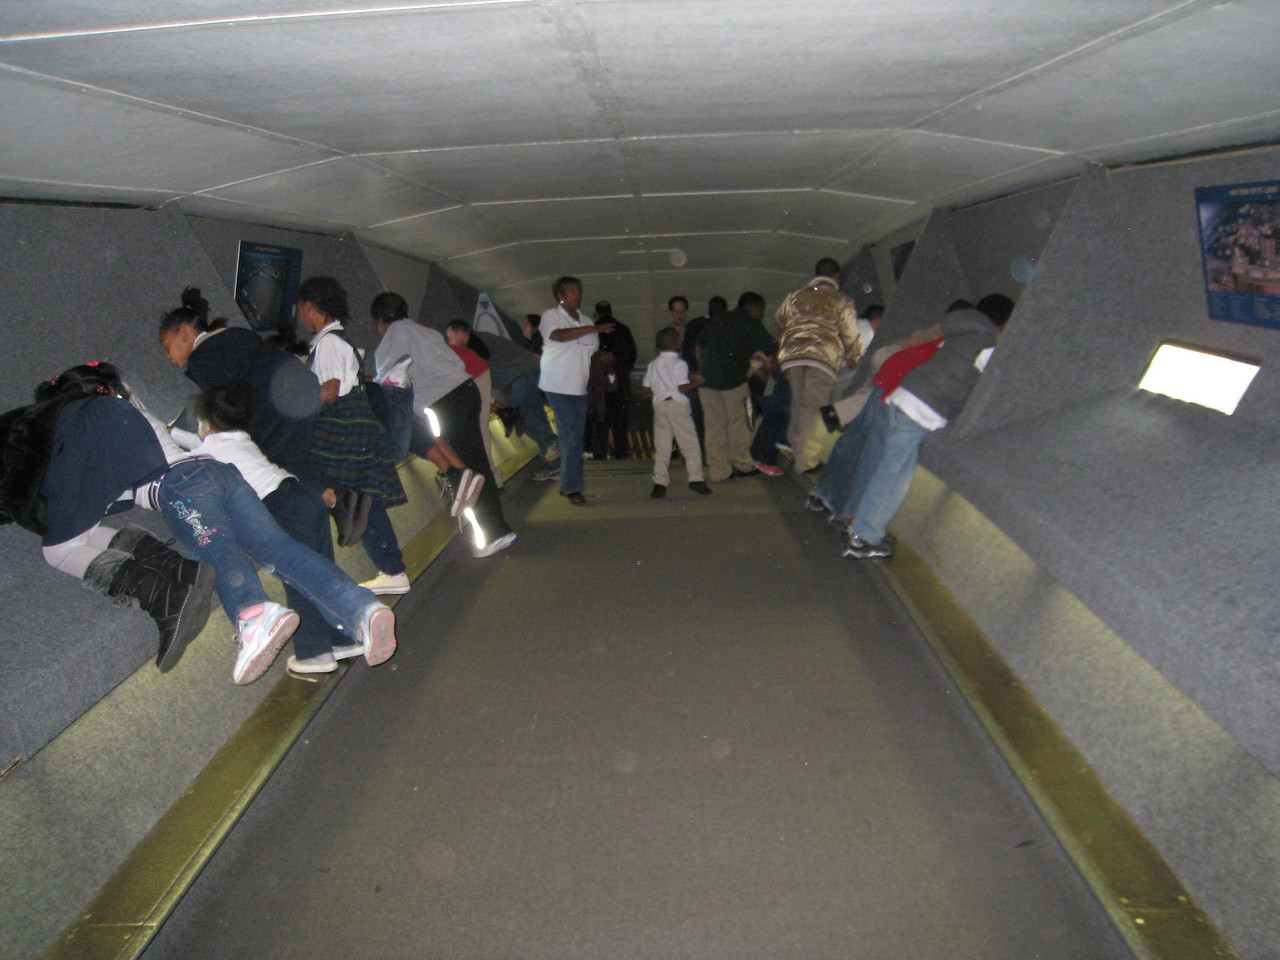 People inside the top of the St. Louis arch